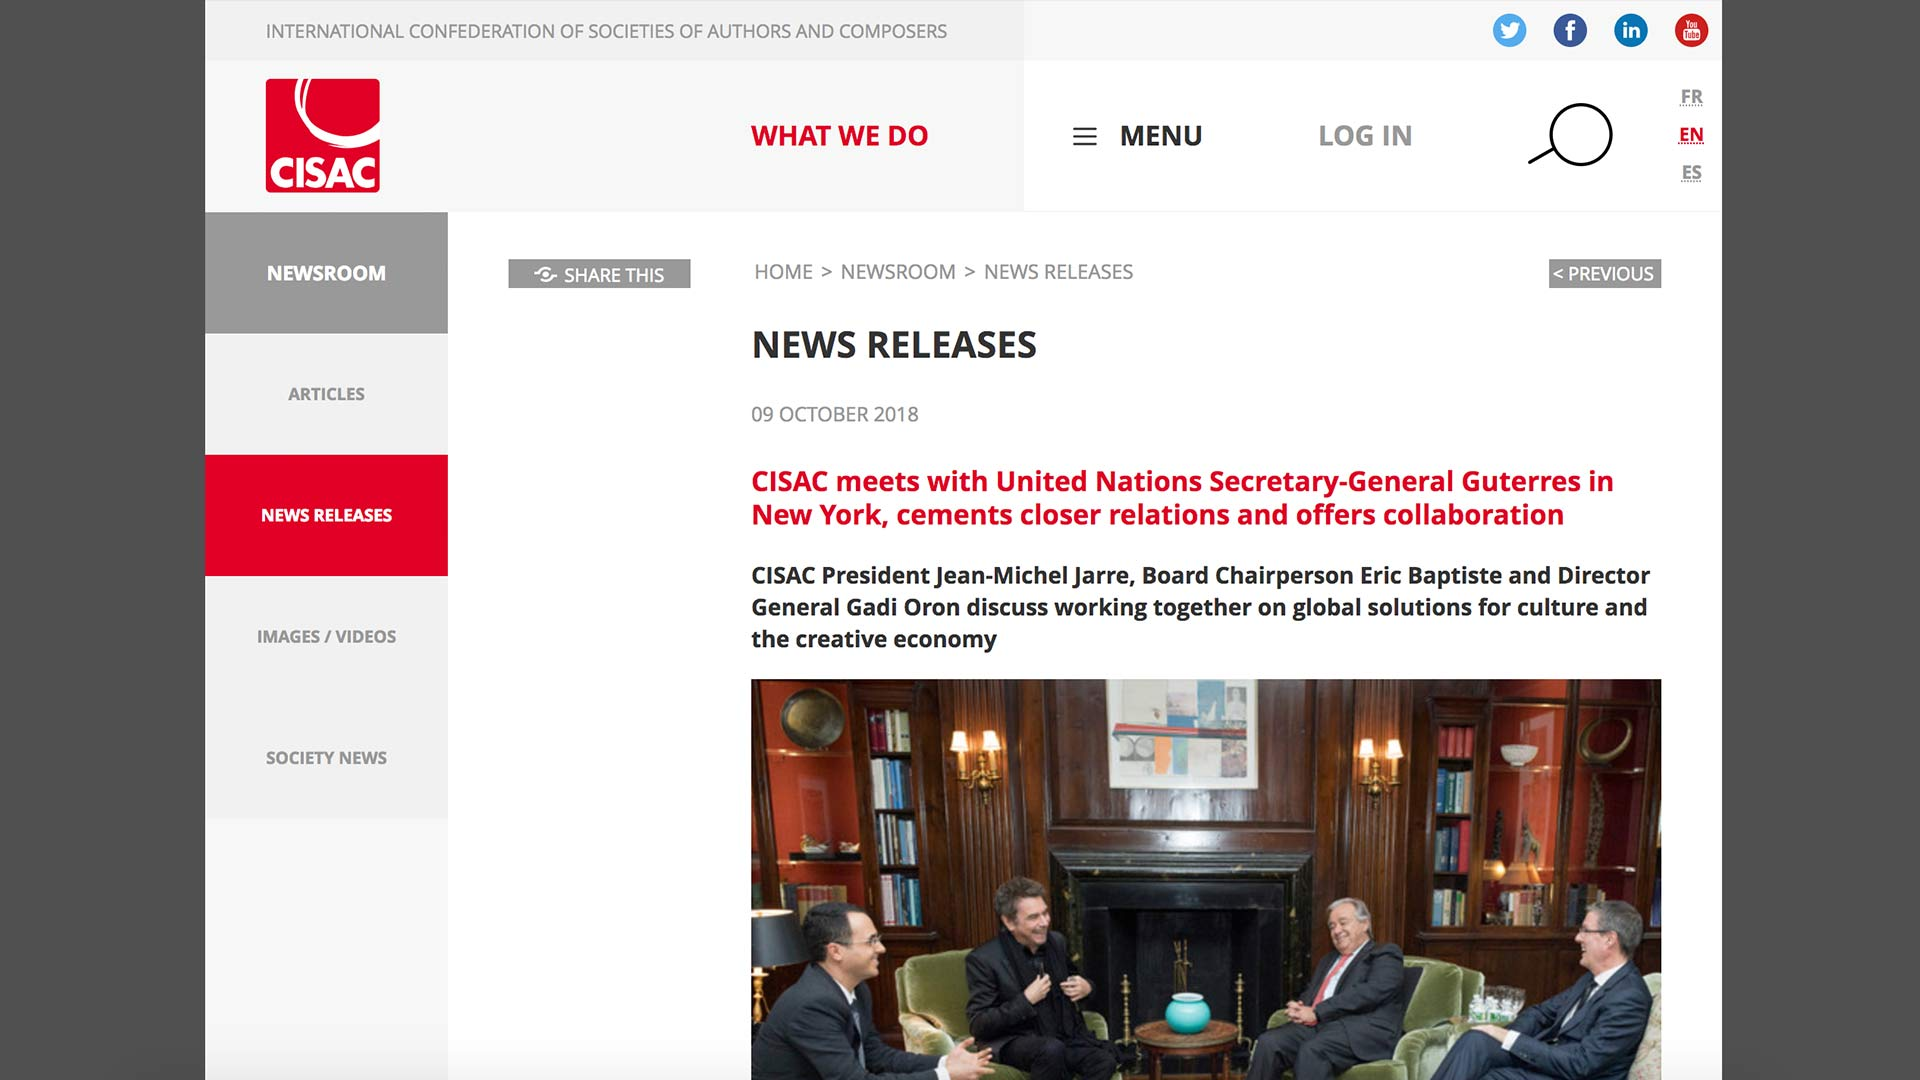 Fairness Rocks News CISAC meets with United Nations Secretary-General Guterres in New York, cements closer relations and offers collaboration